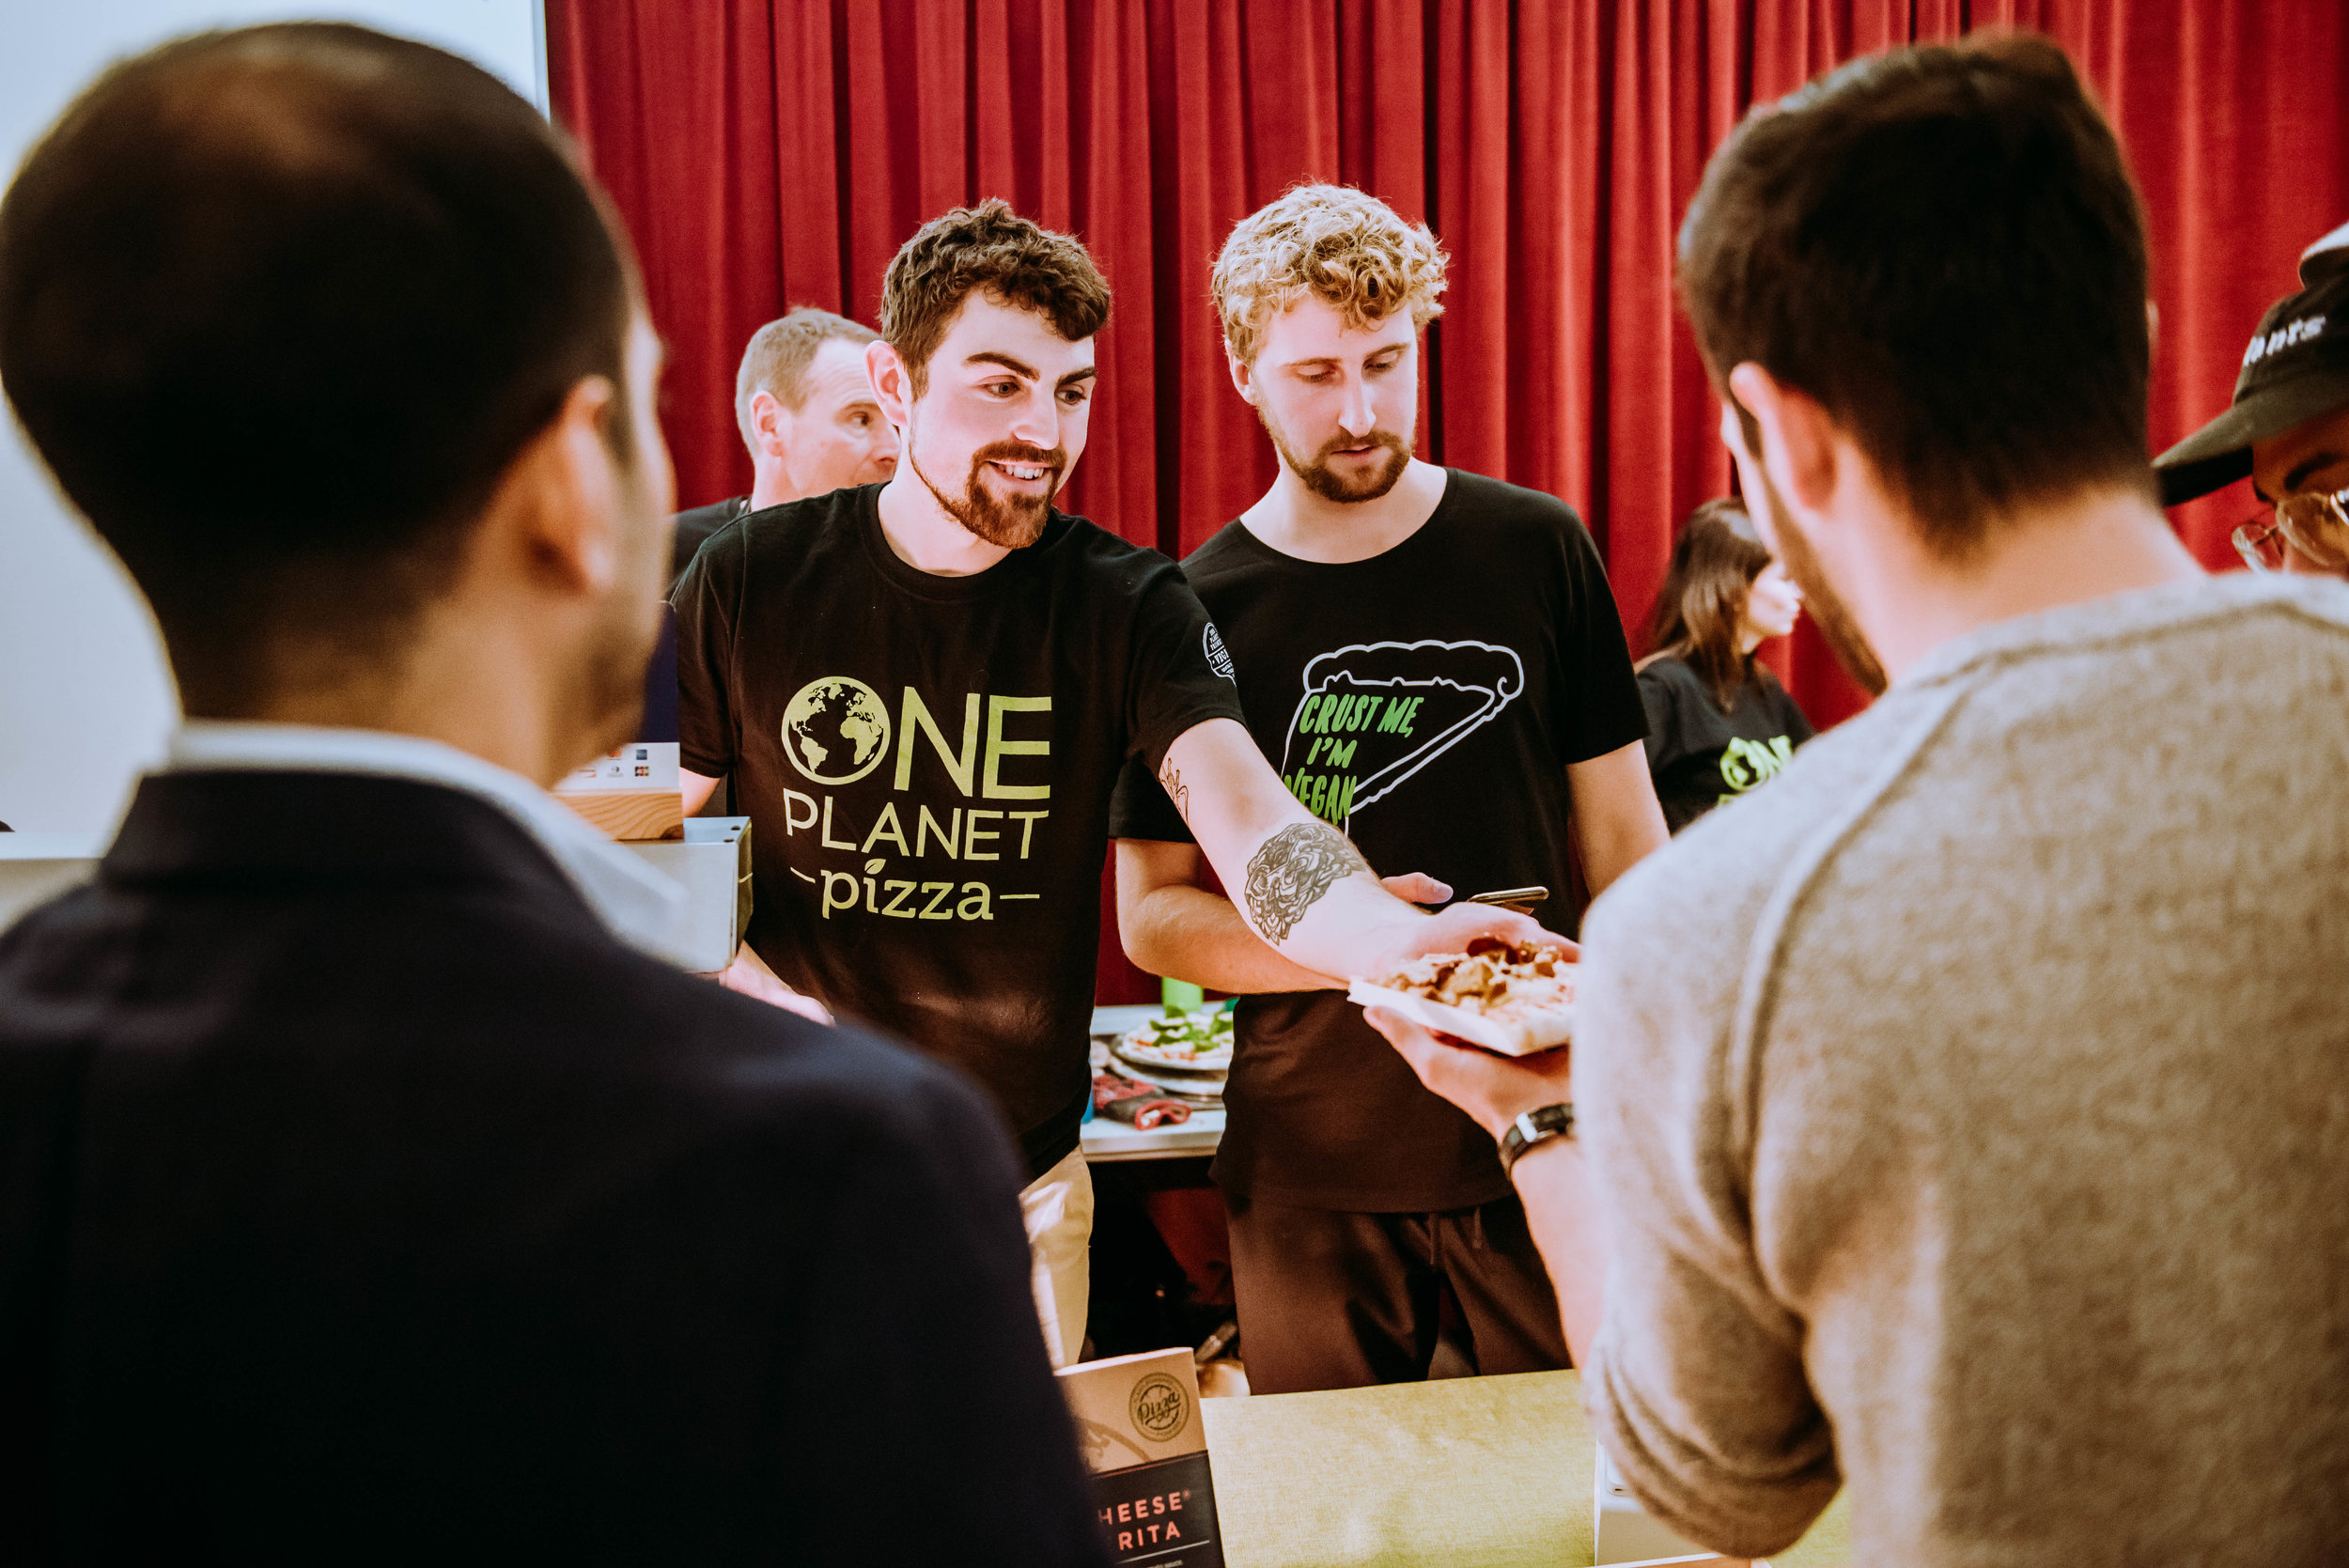 One Planet Pizza at Vevolution Festival 2018